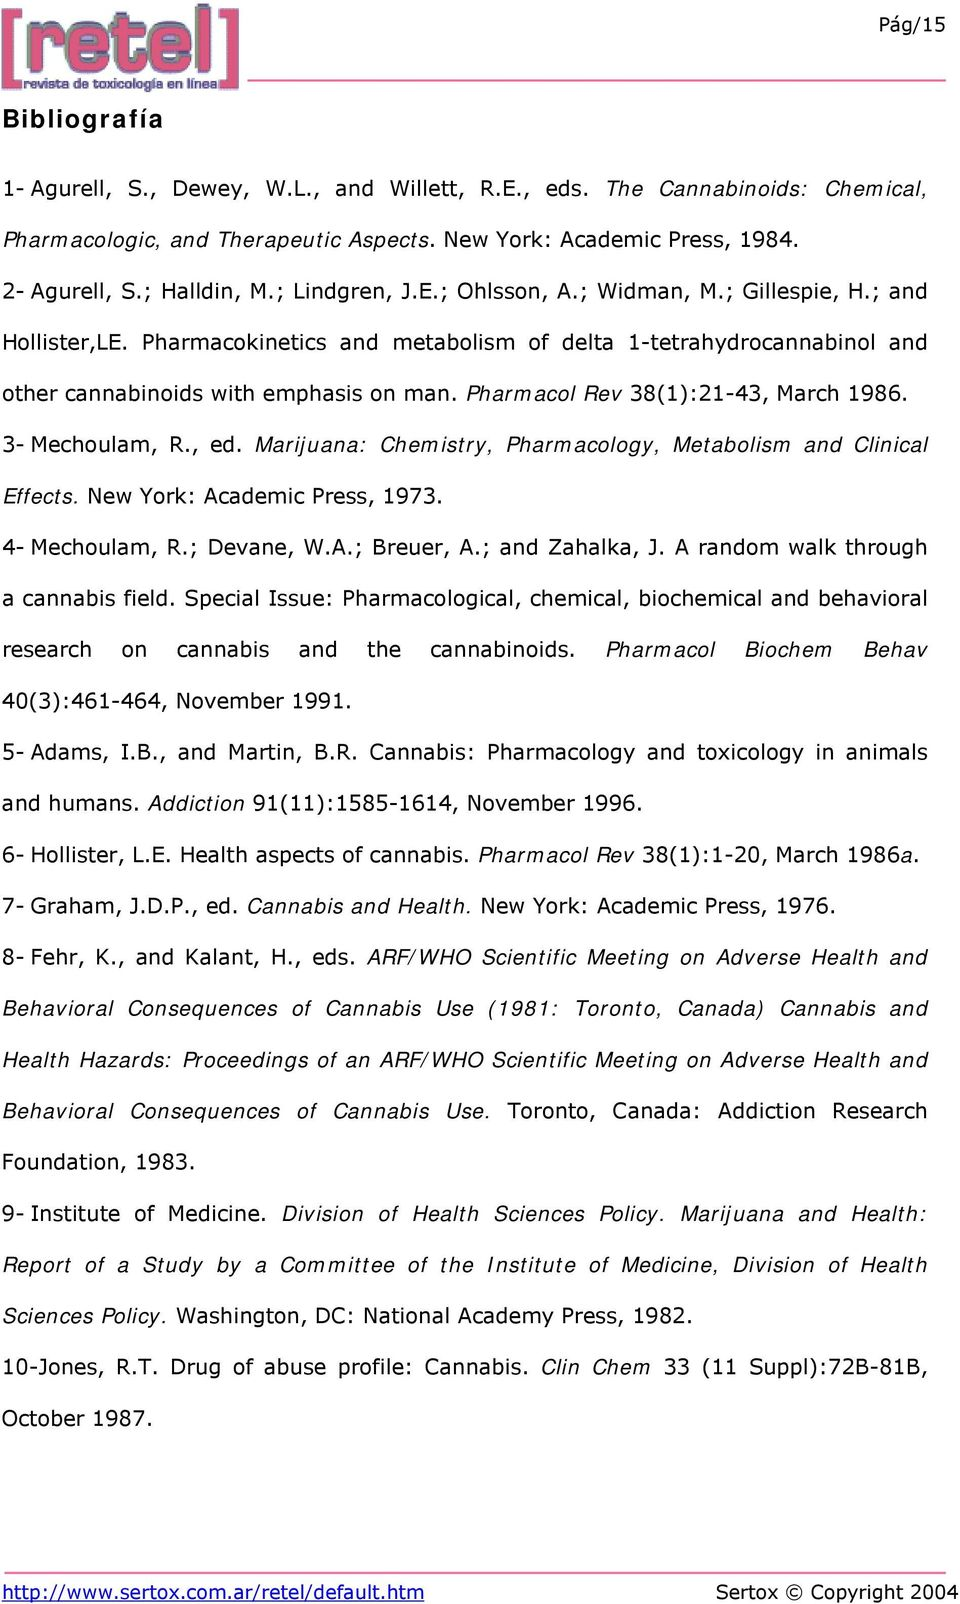 Pharmacol Rev 38(1):21-43, March 1986. 3- Mechoulam, R., ed. Marijuana: Chemistry, Pharmacology, Metabolism and Clinical Effects. New York: Academic Press, 1973. 4- Mechoulam, R.; Devane, W.A.; Breuer, A.